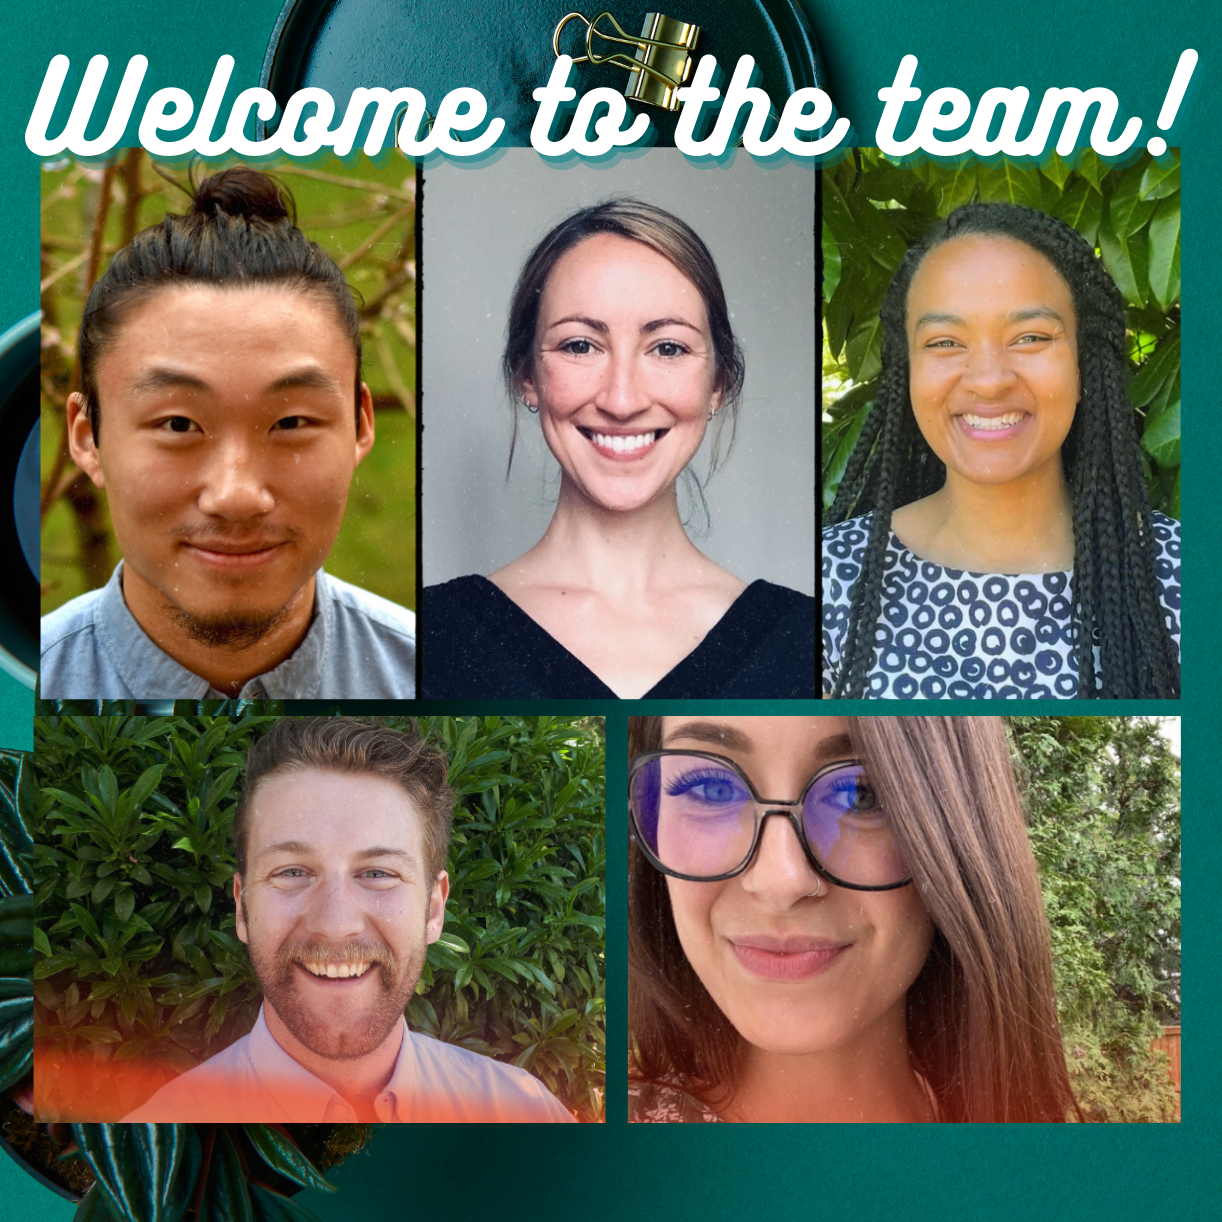 Smiling faces and a text that reads: Welcome to the team!